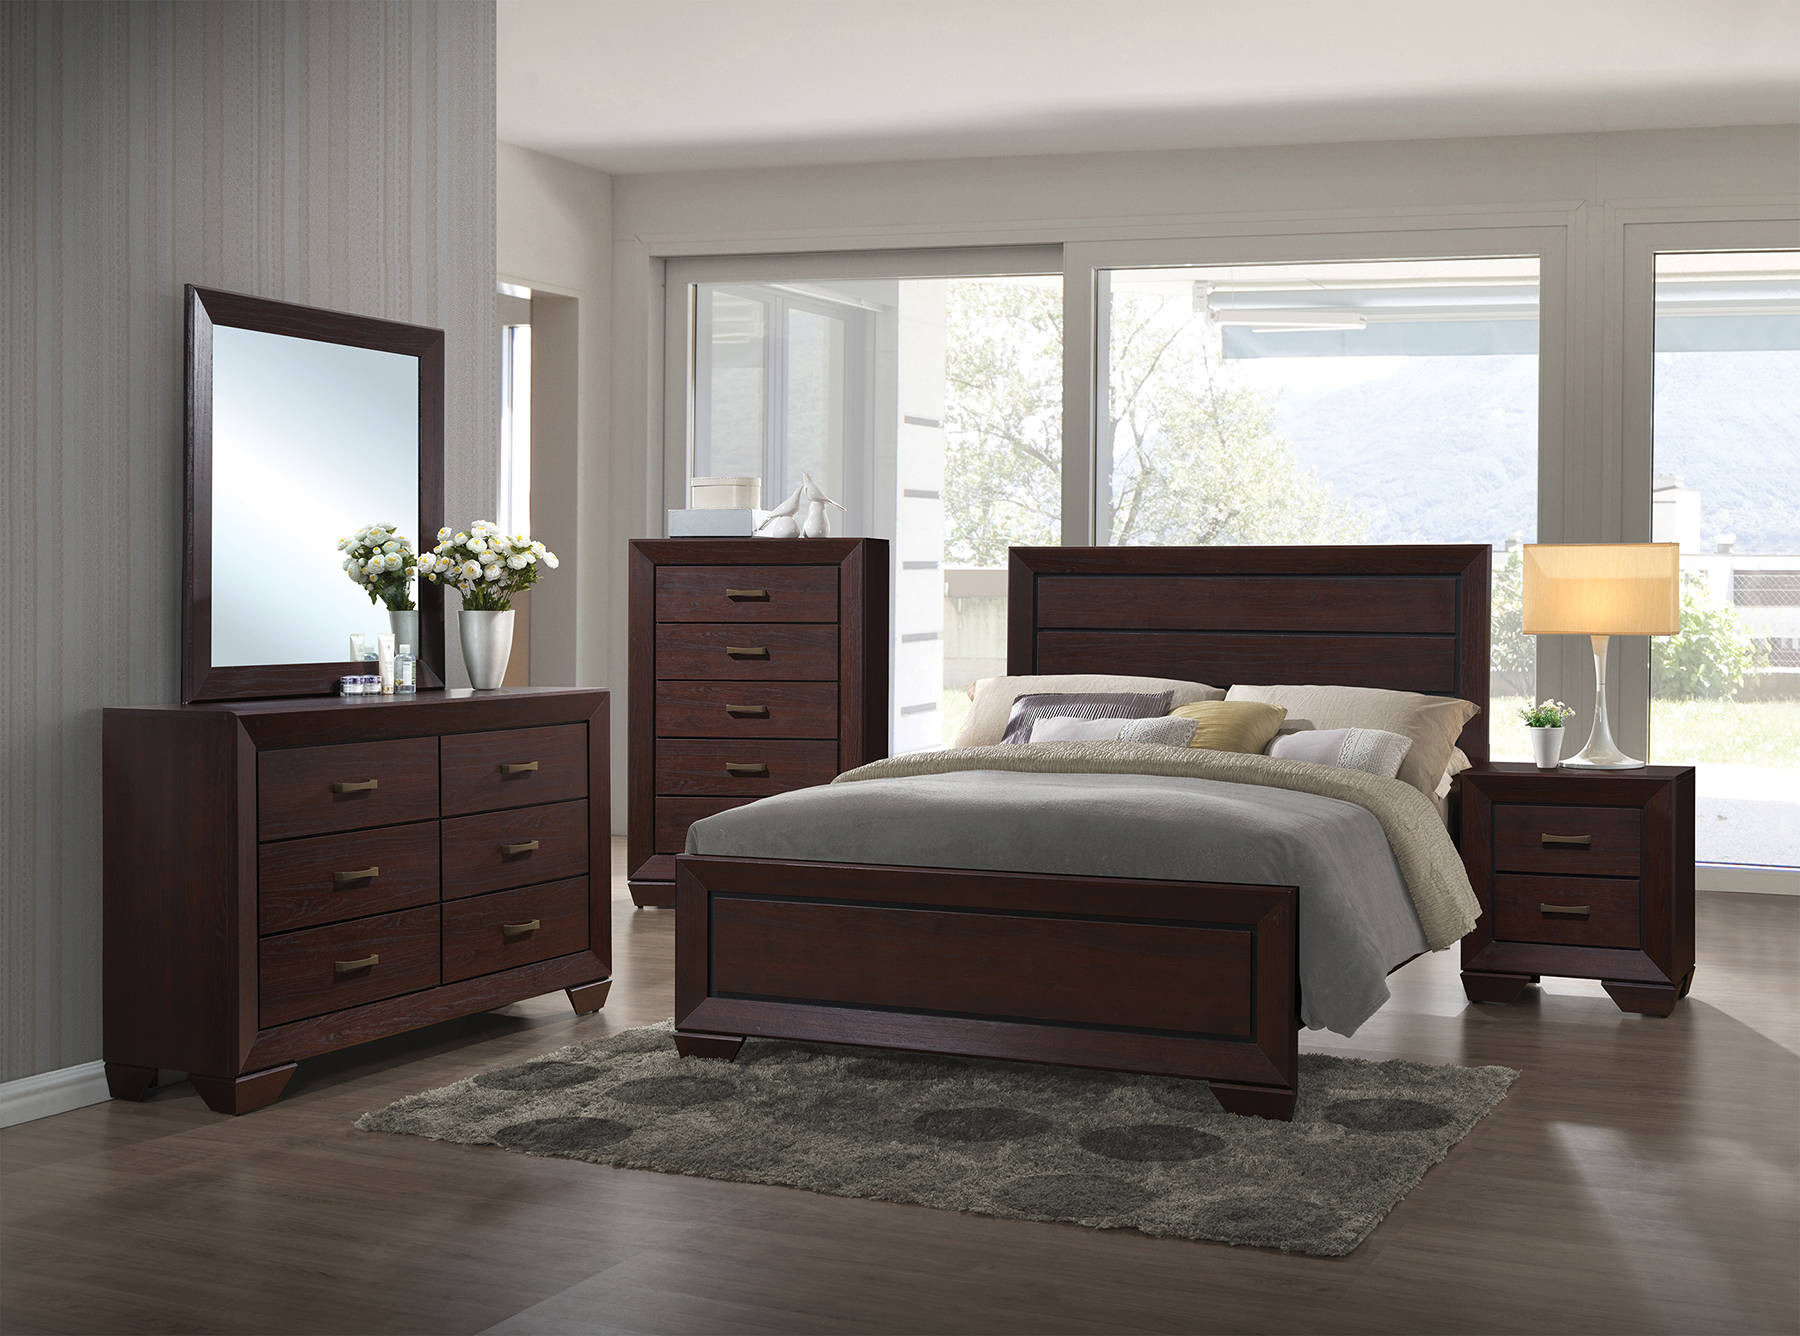 Best ideas about Master Bedroom Sets . Save or Pin Fenbrook Transitional Dark Cocoa Hardwood Master Bedroom Now.